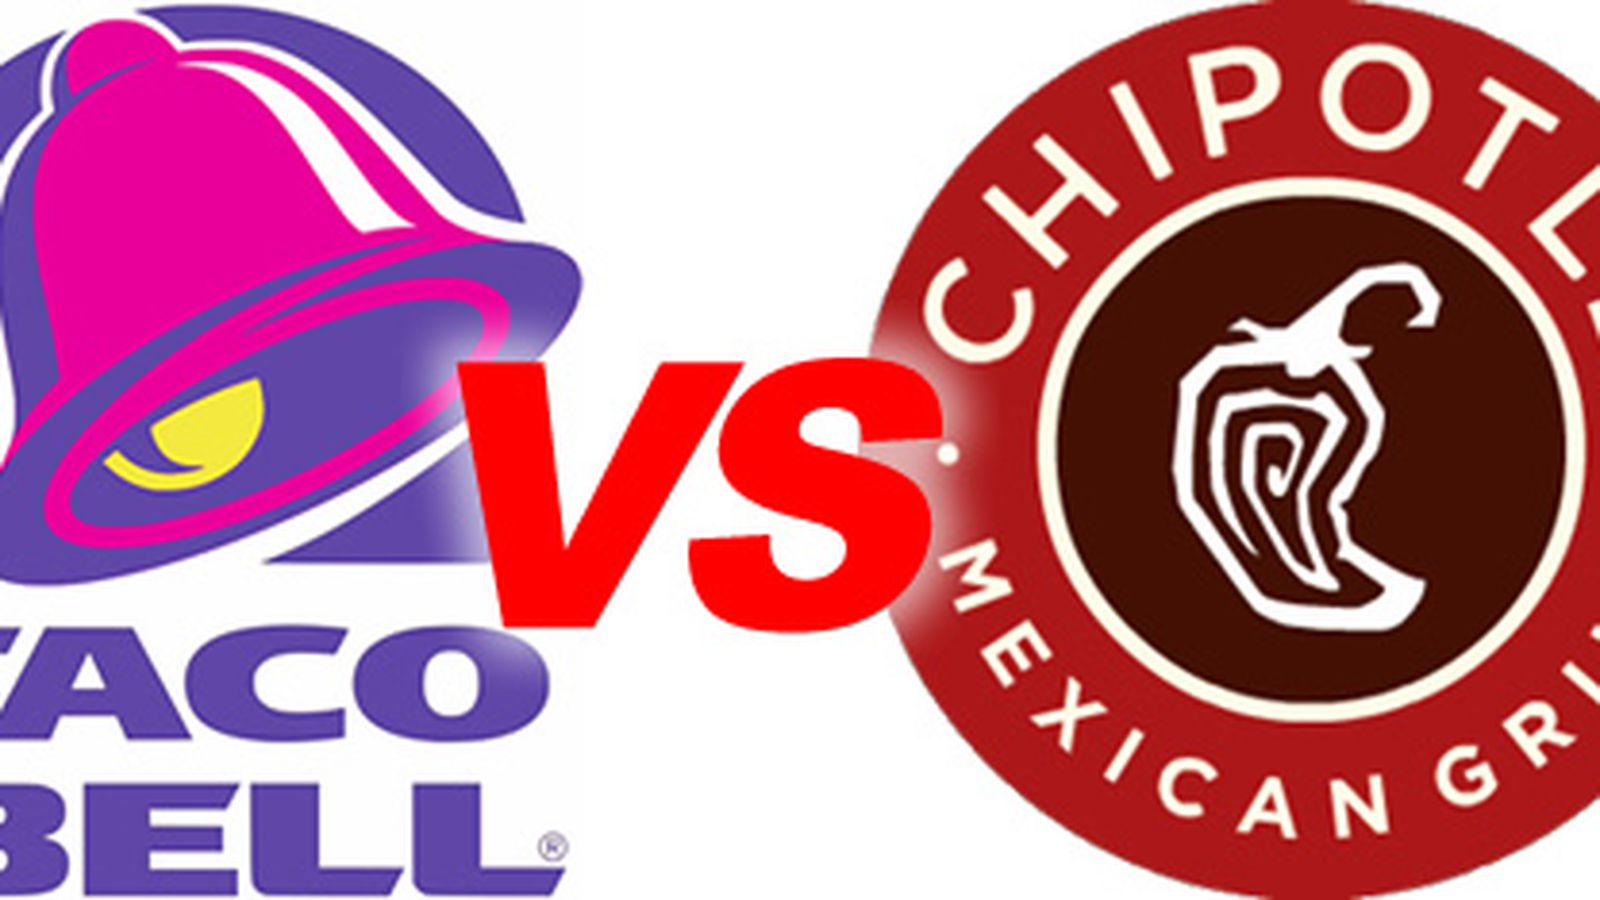 Taco Bell vs Chipotle The Next Great Burrito War   Eater 1600x900